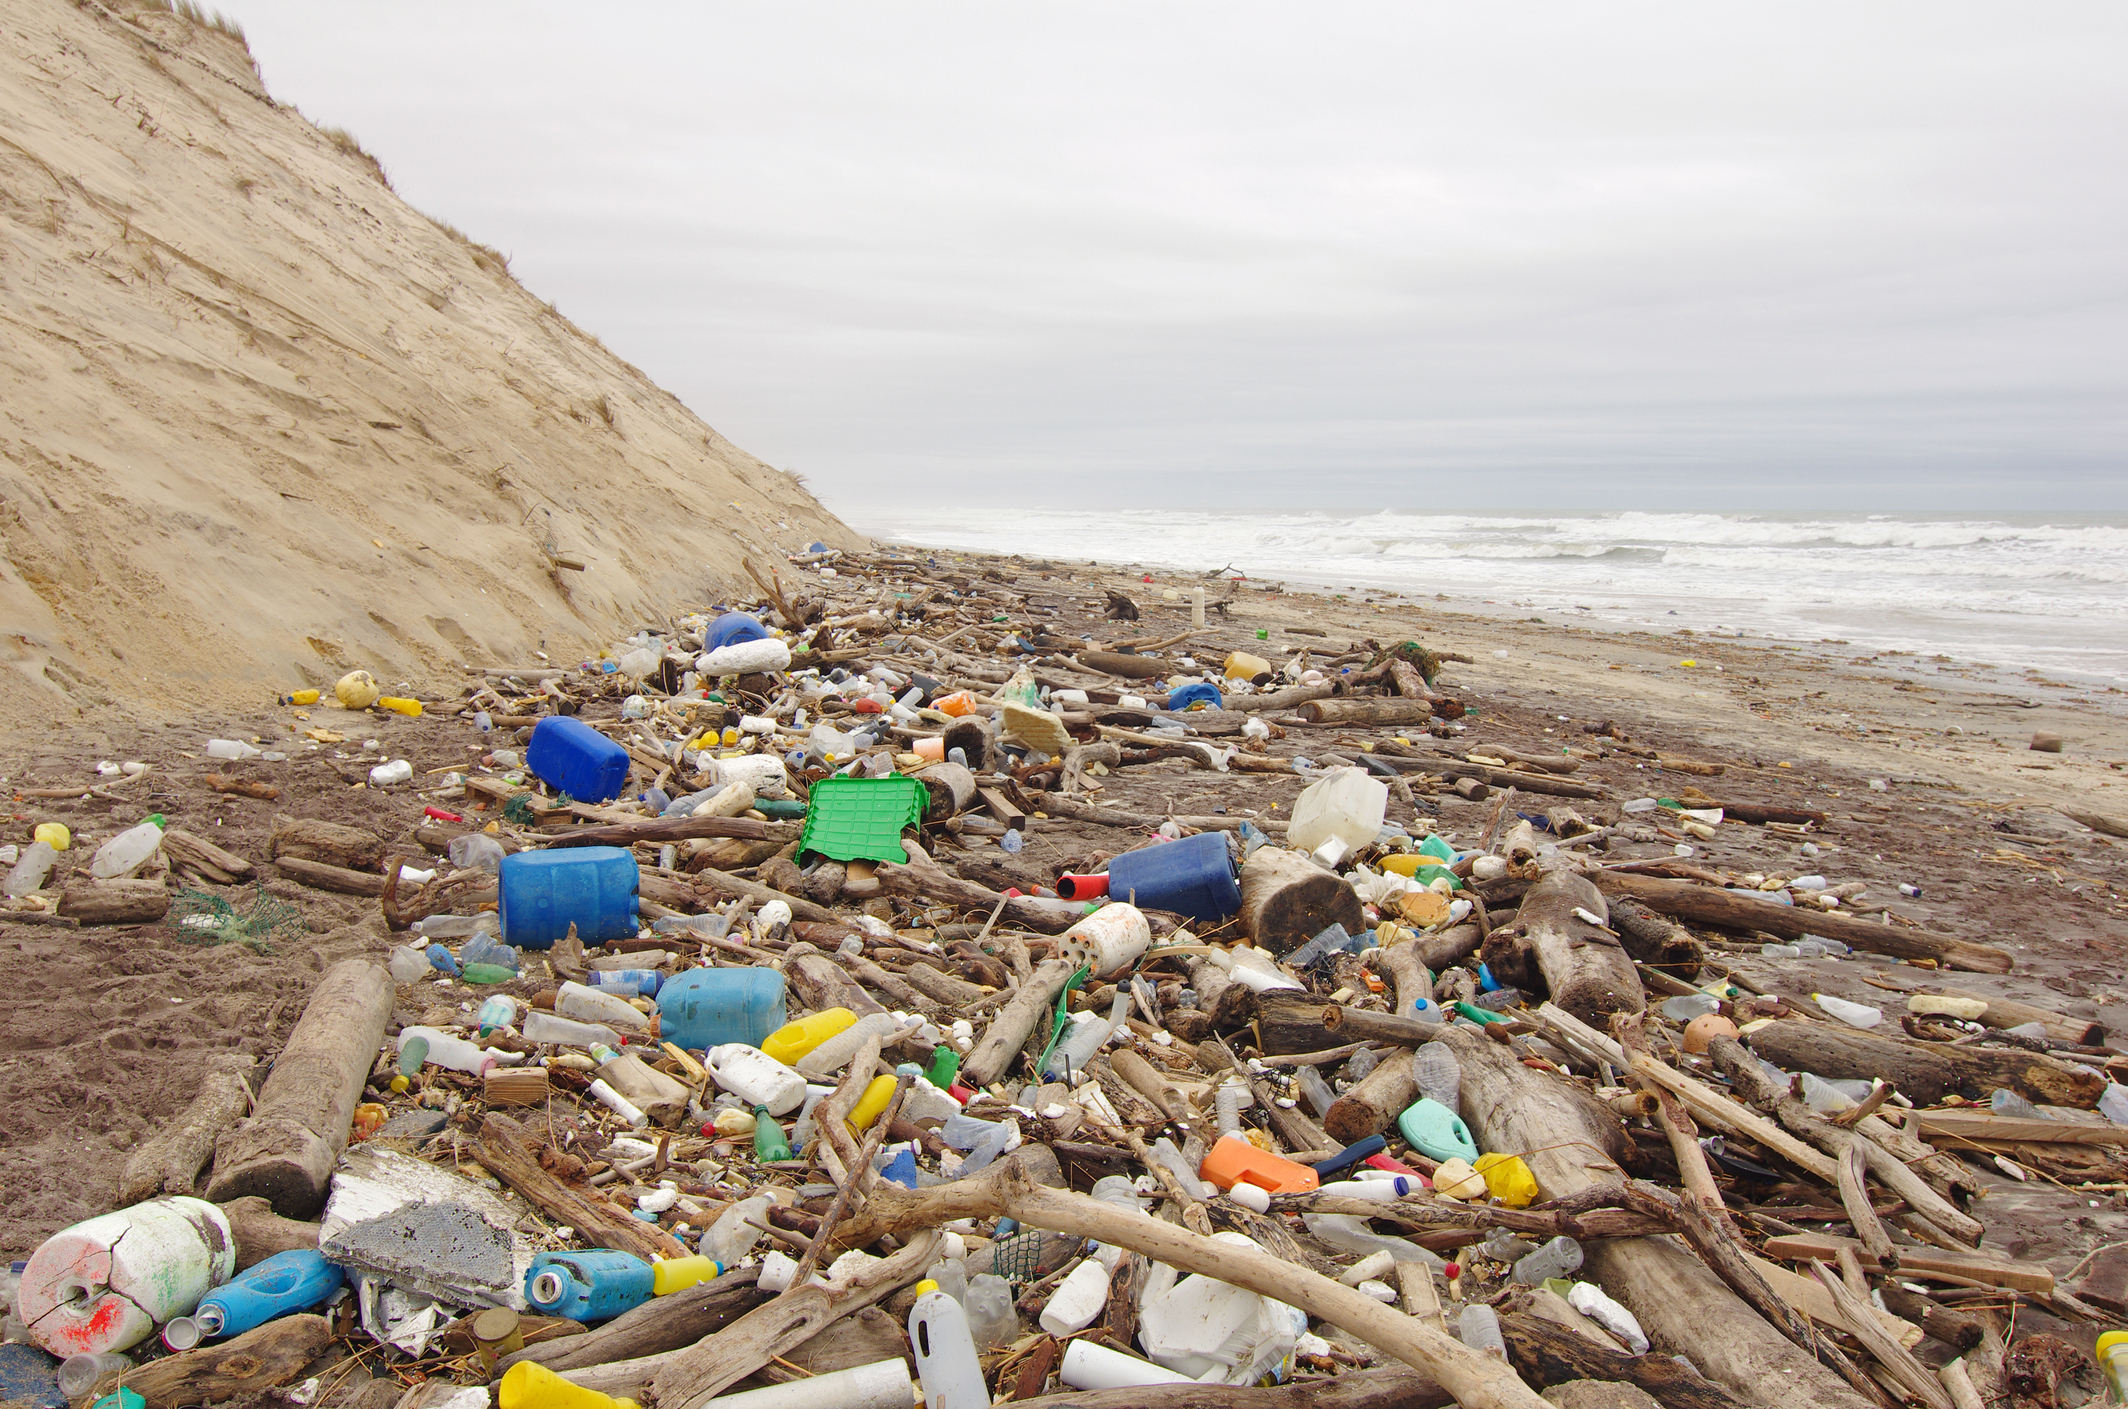 Government launches microplastics research to protect oceans